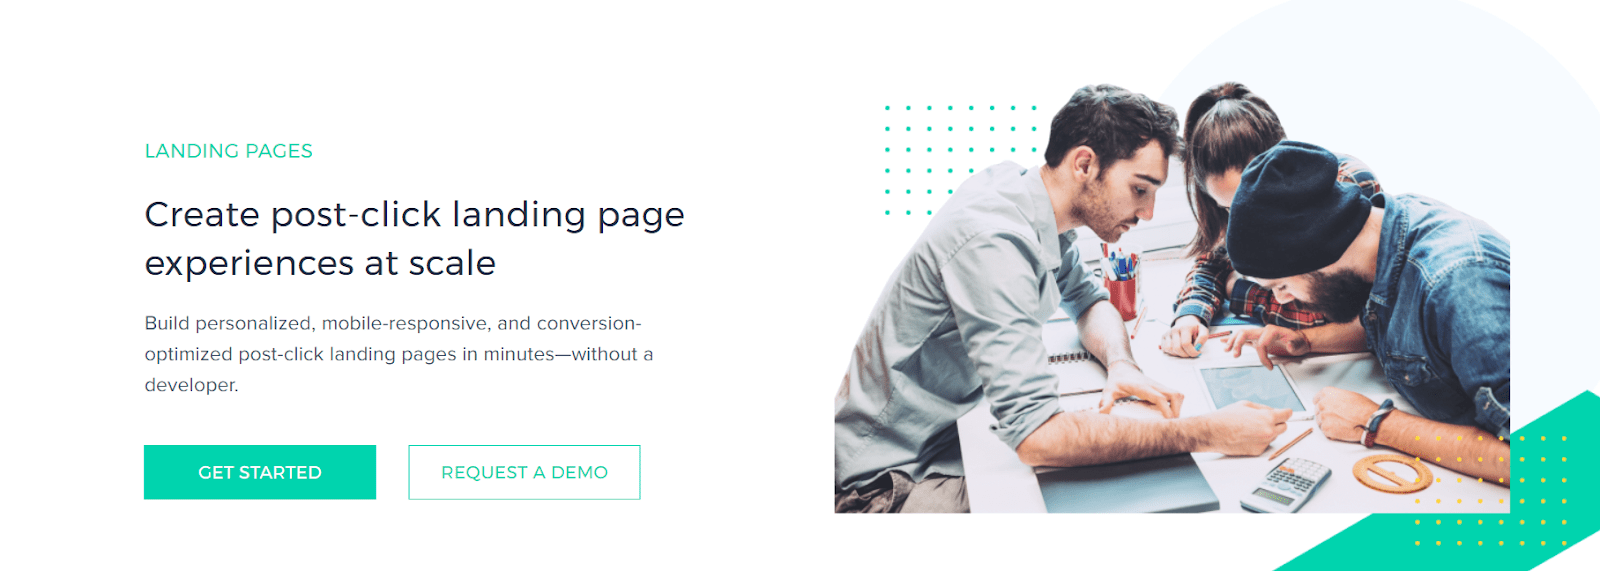 landing-page-create-01